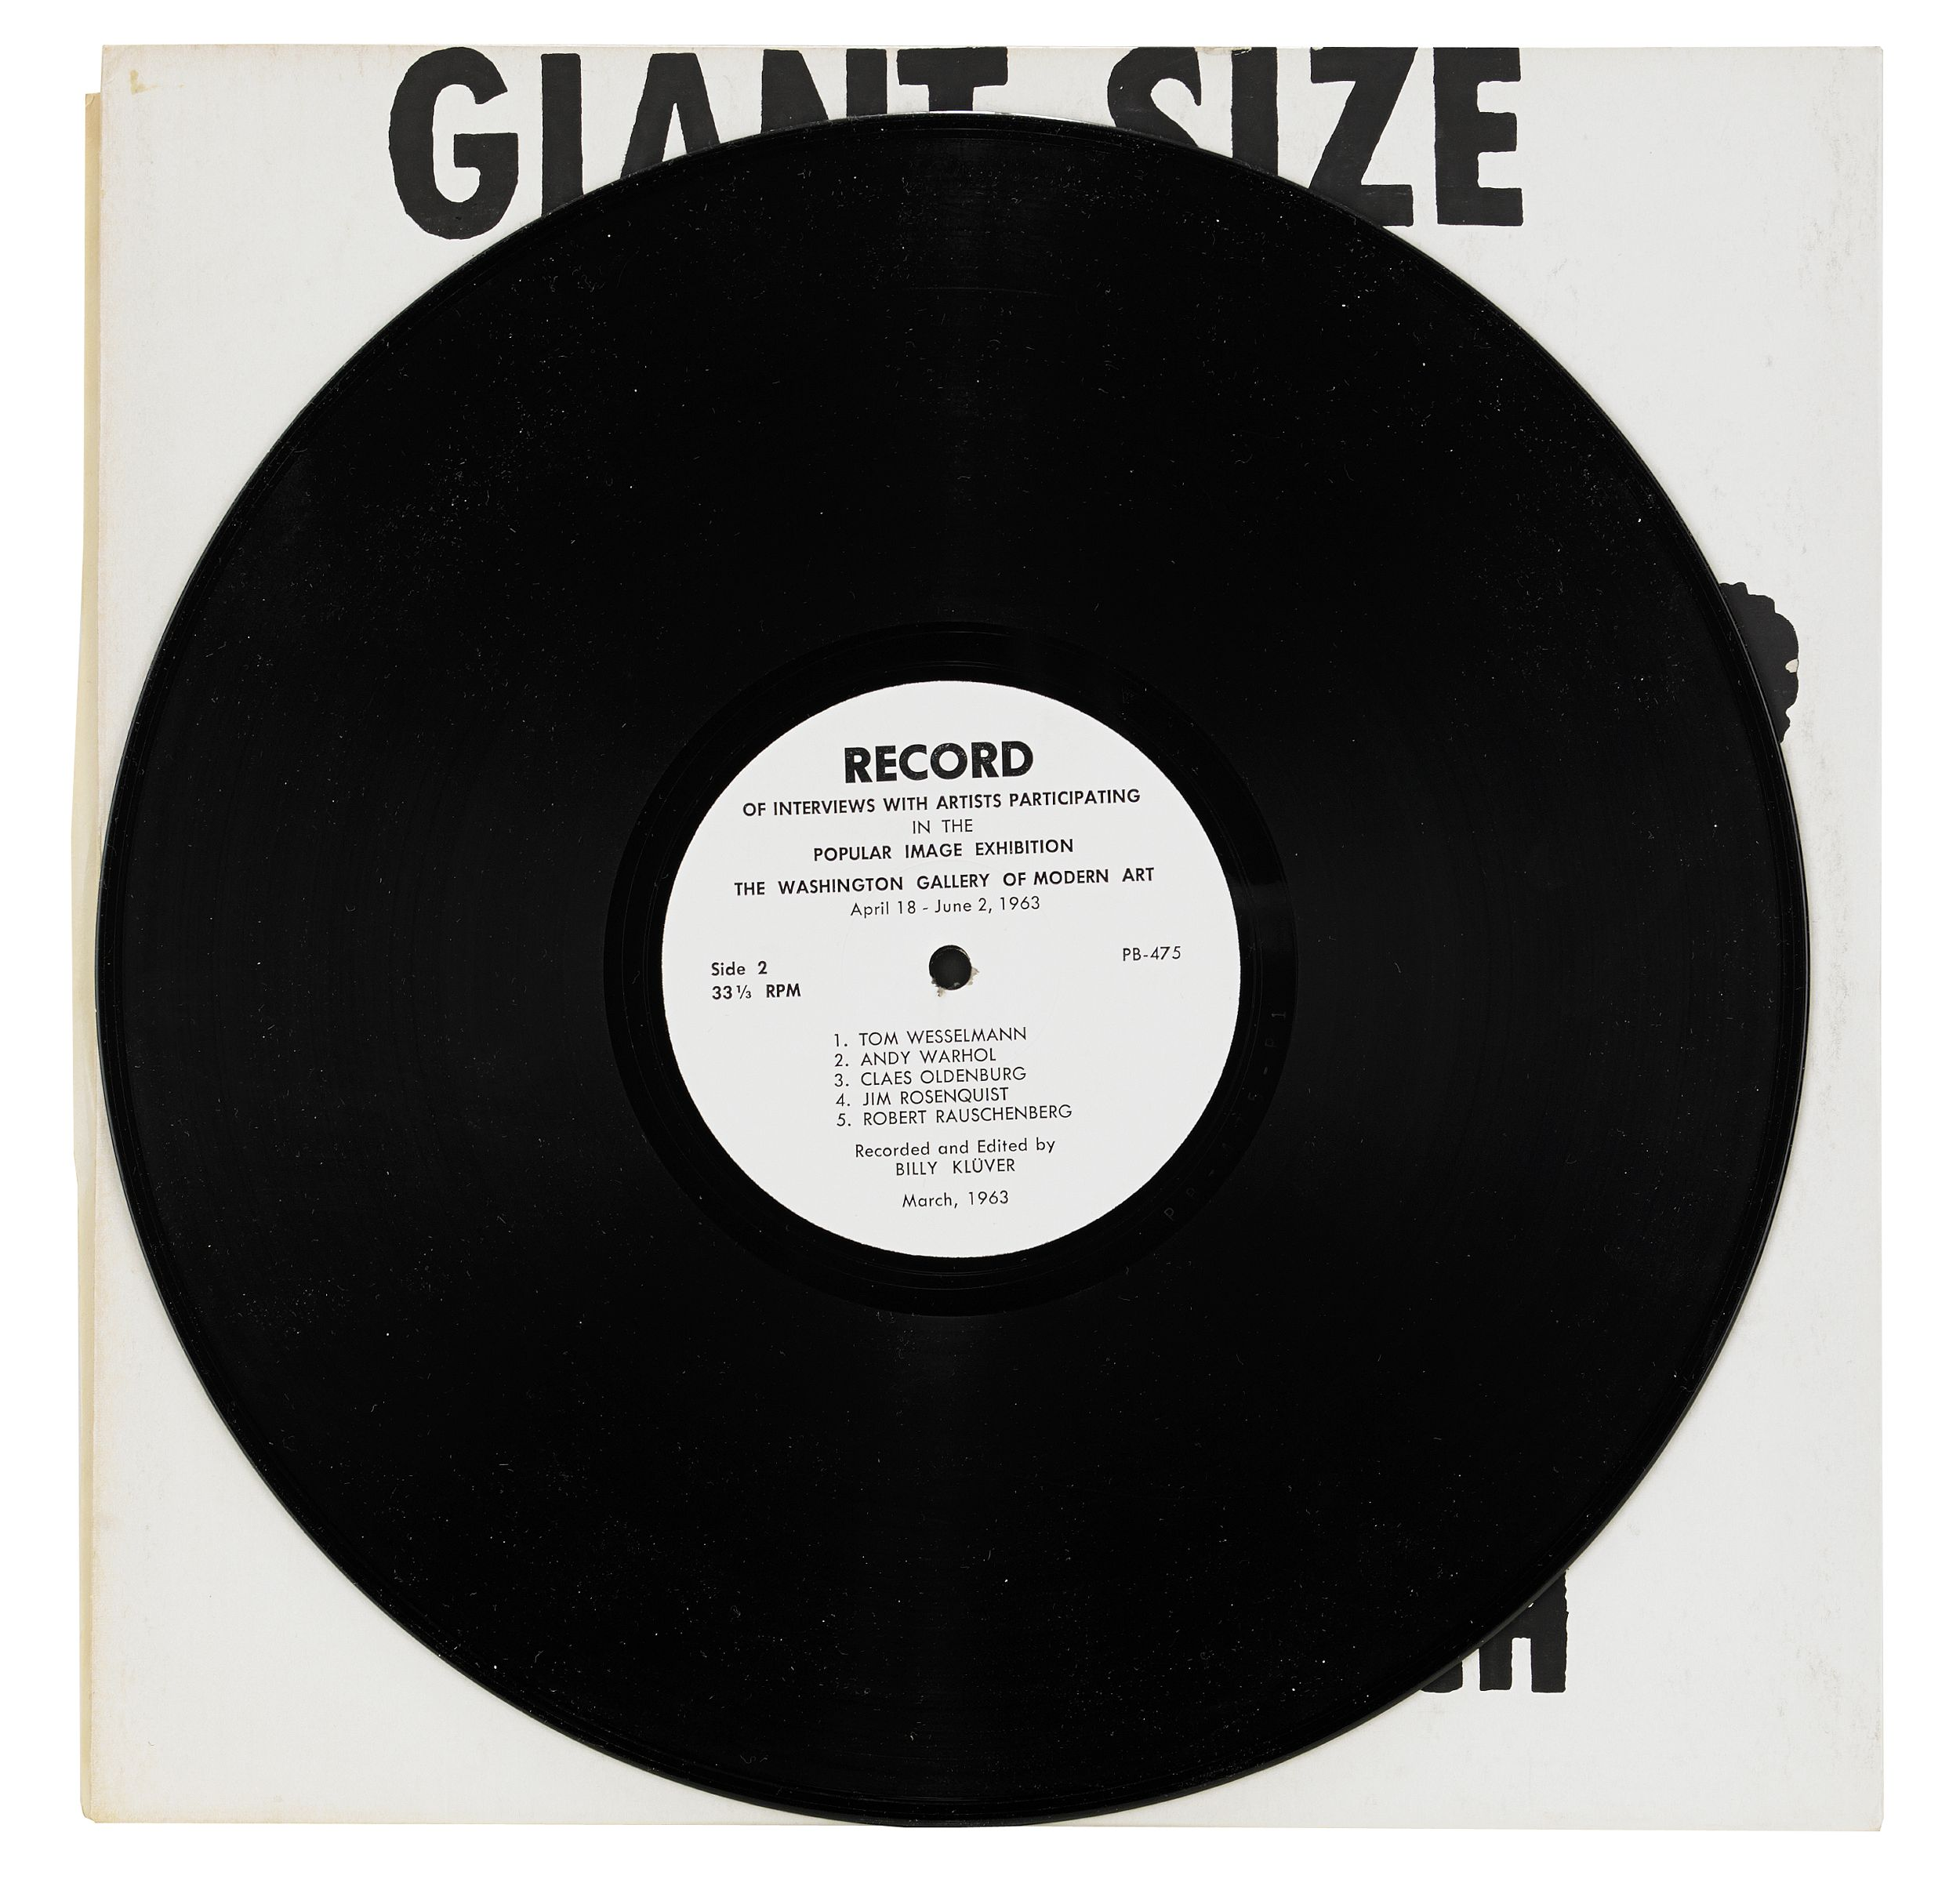 Andy Warhol, Giant Size $ 1.57